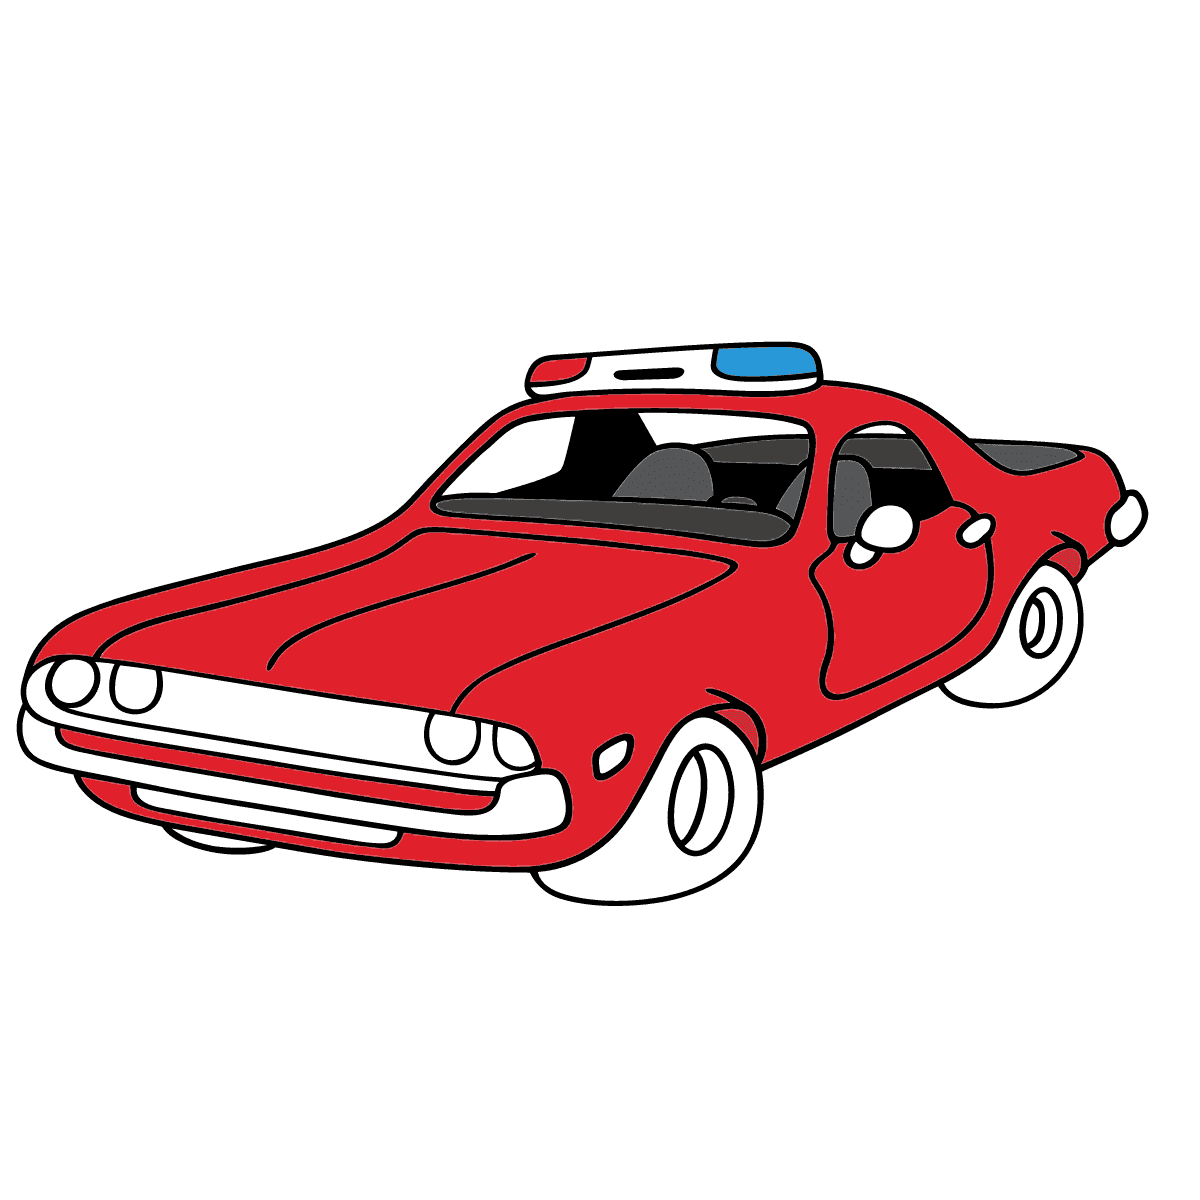 Coloring Page - A Red Police Car